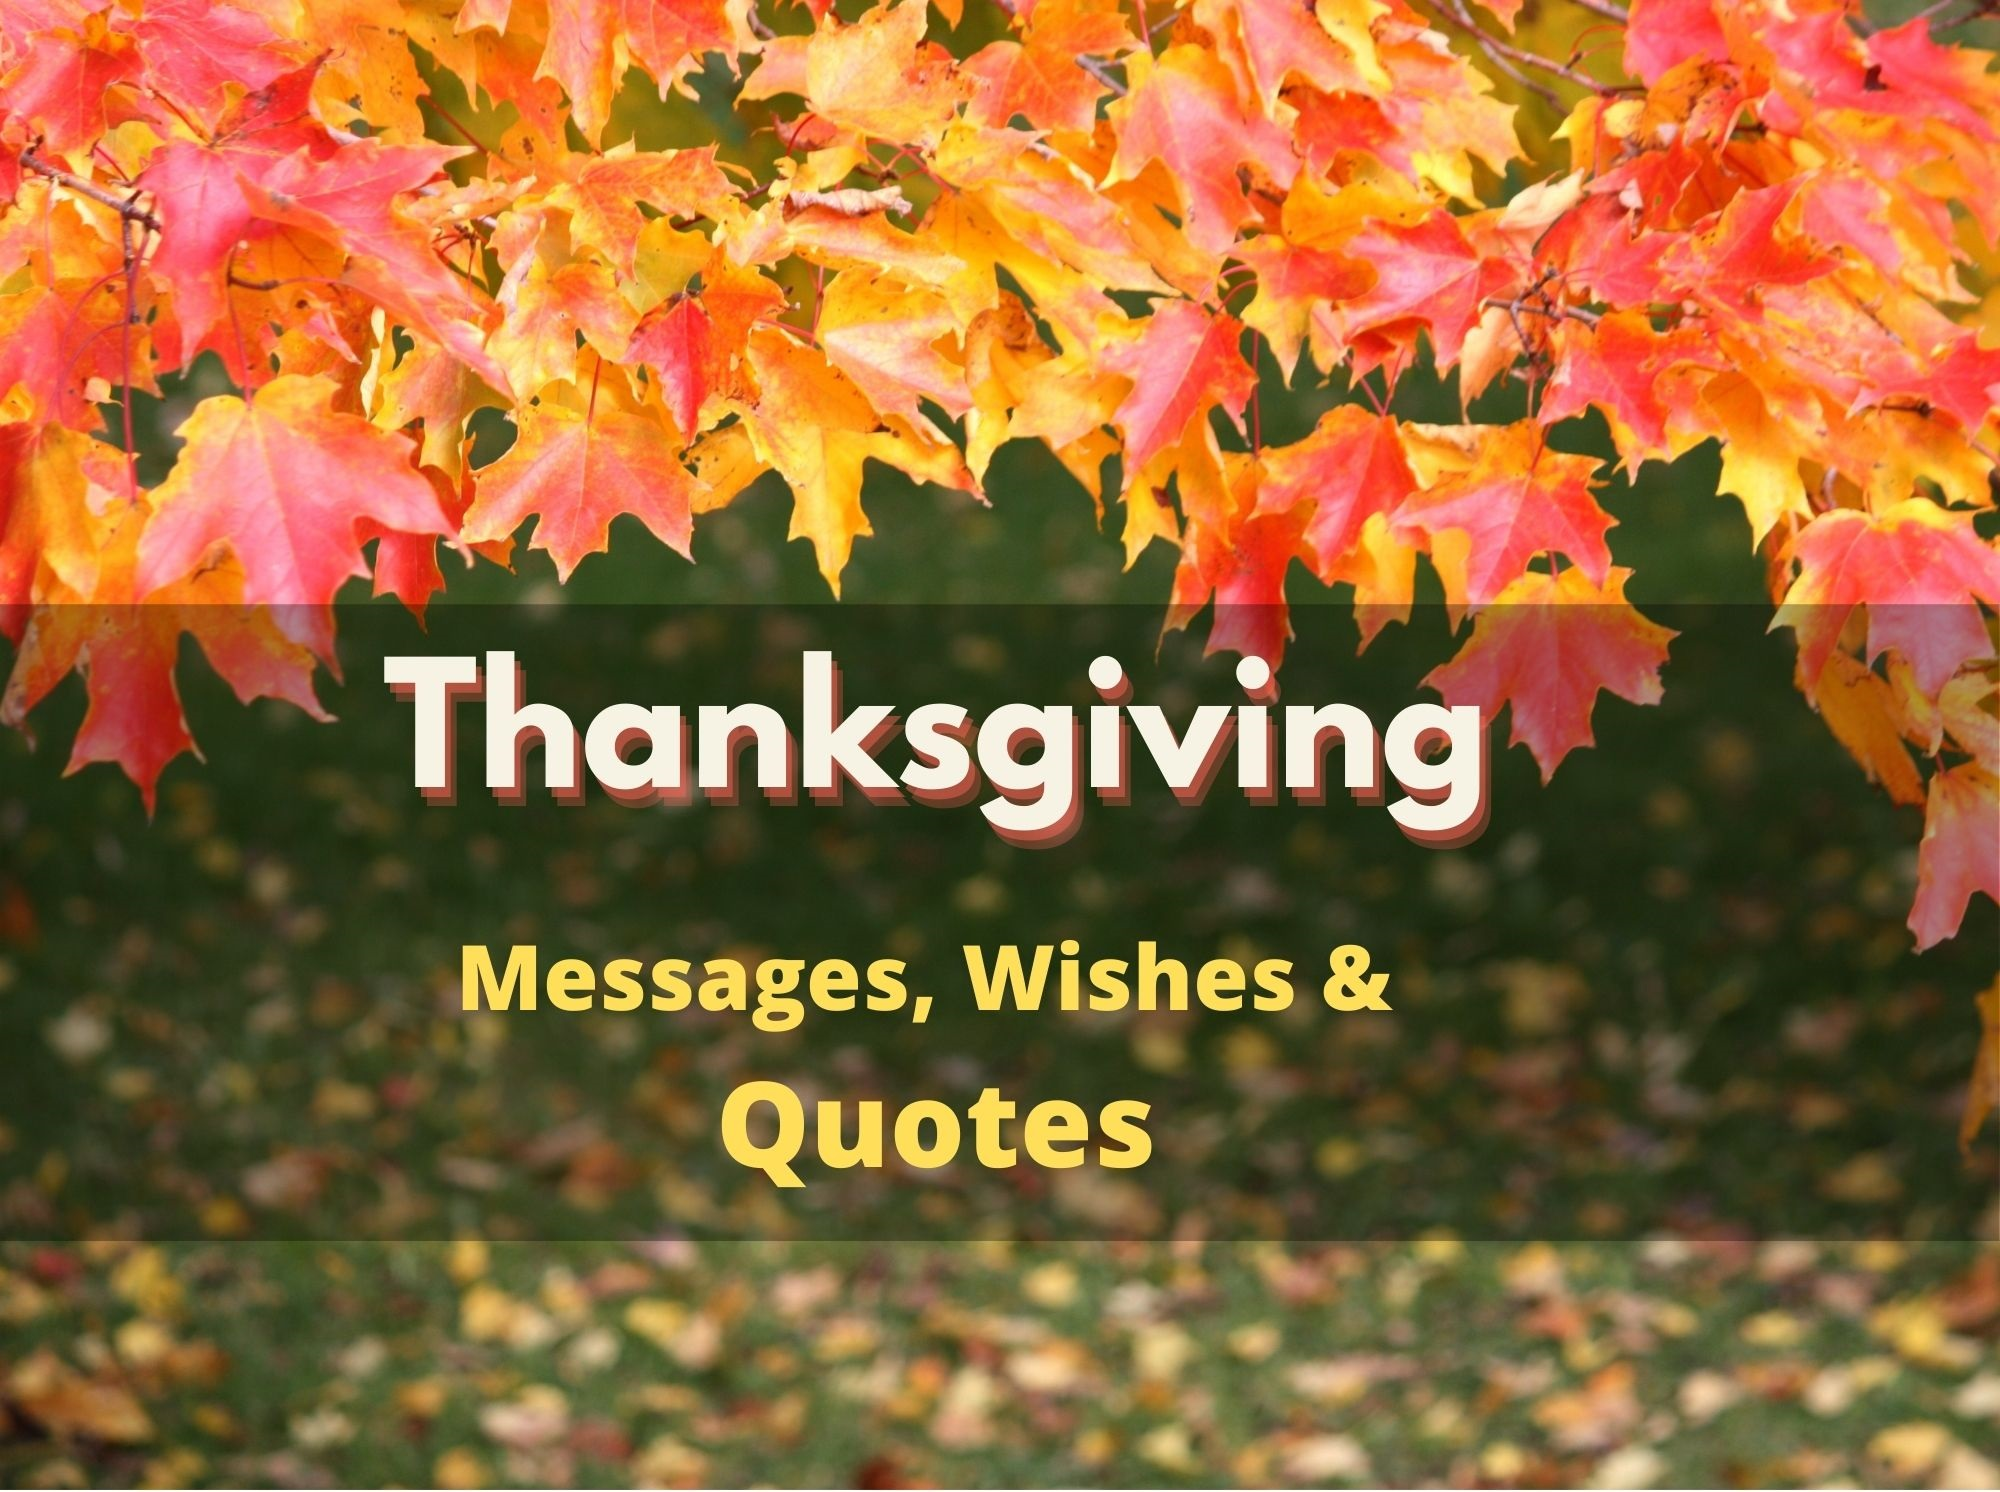 Thanksgiving Messages, Wishes & Quotes